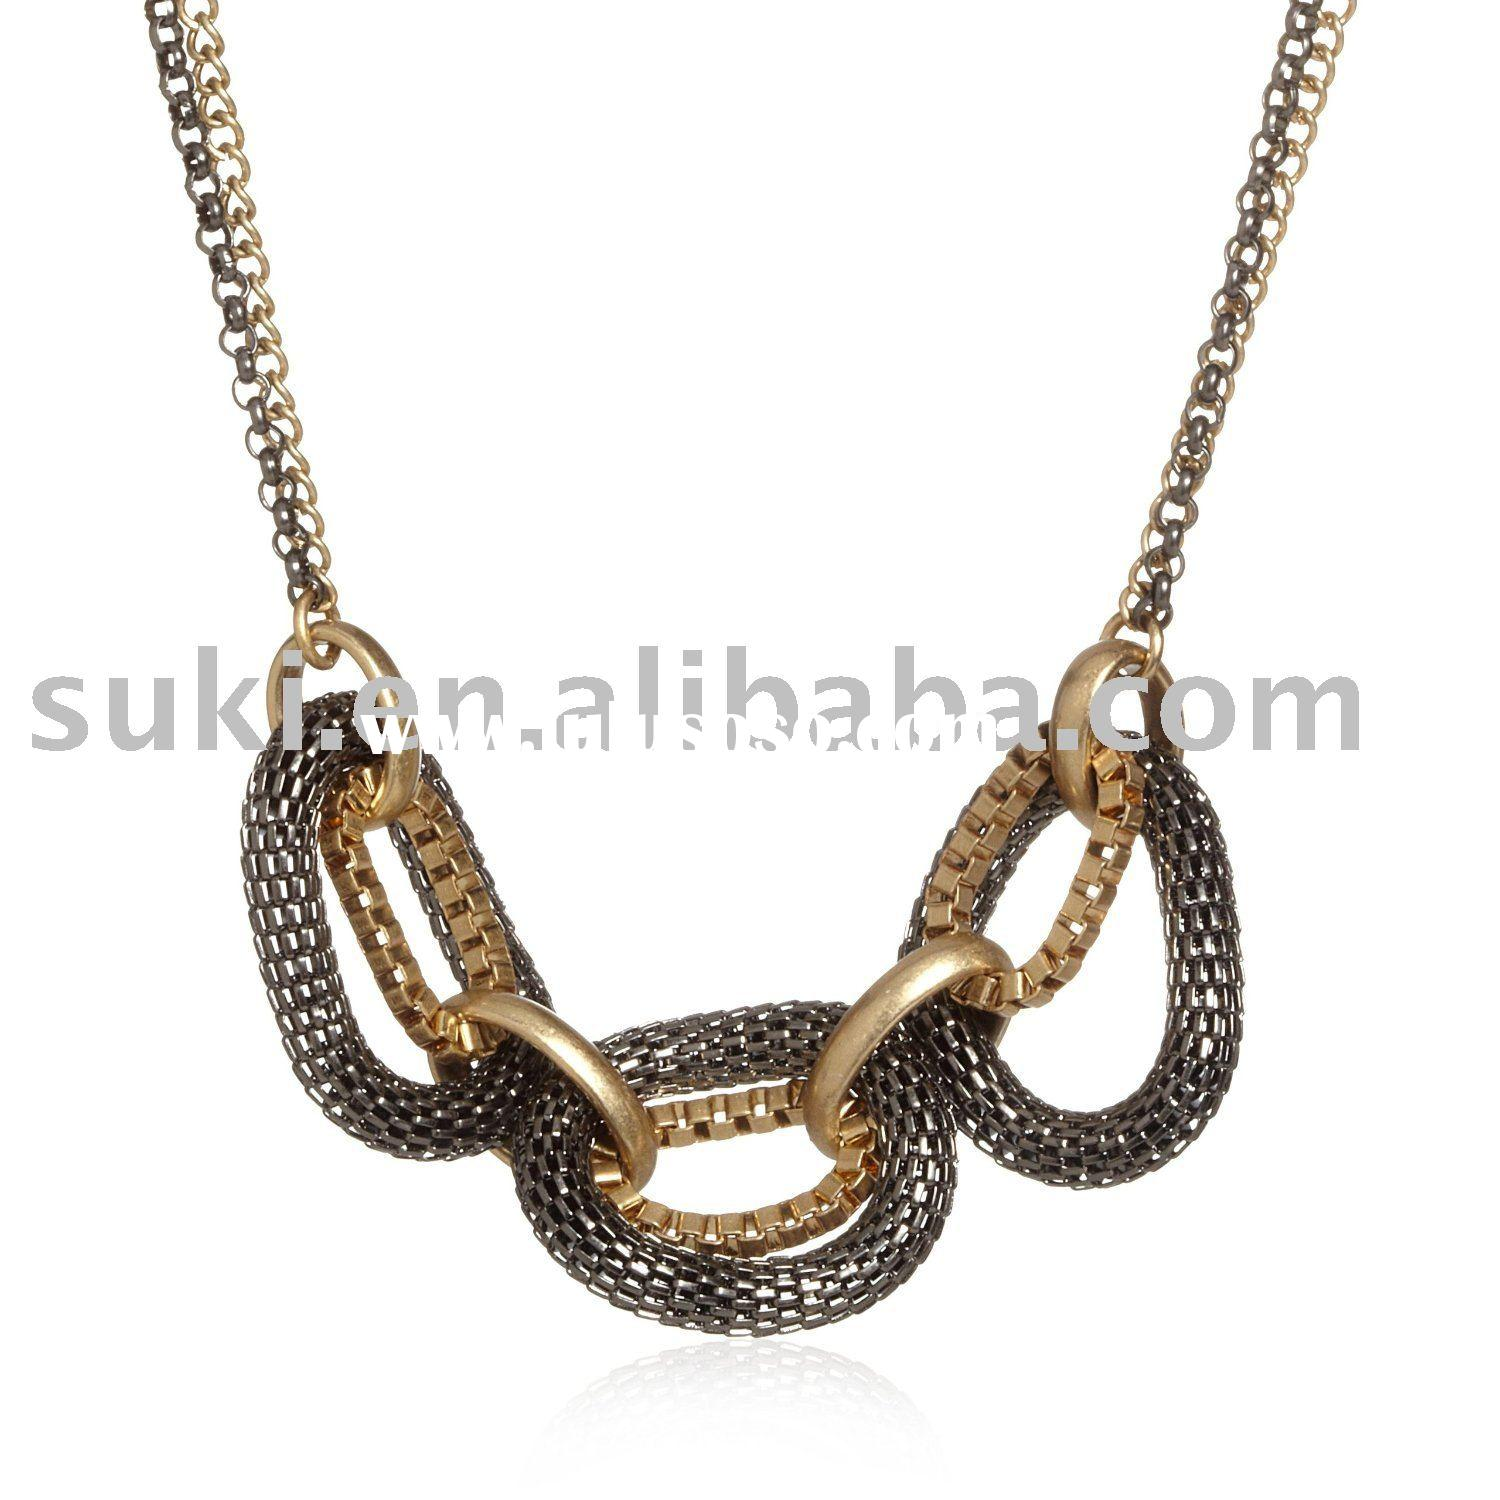 Fashion Necklace, New York Two-Tone Mesh Link Necklace